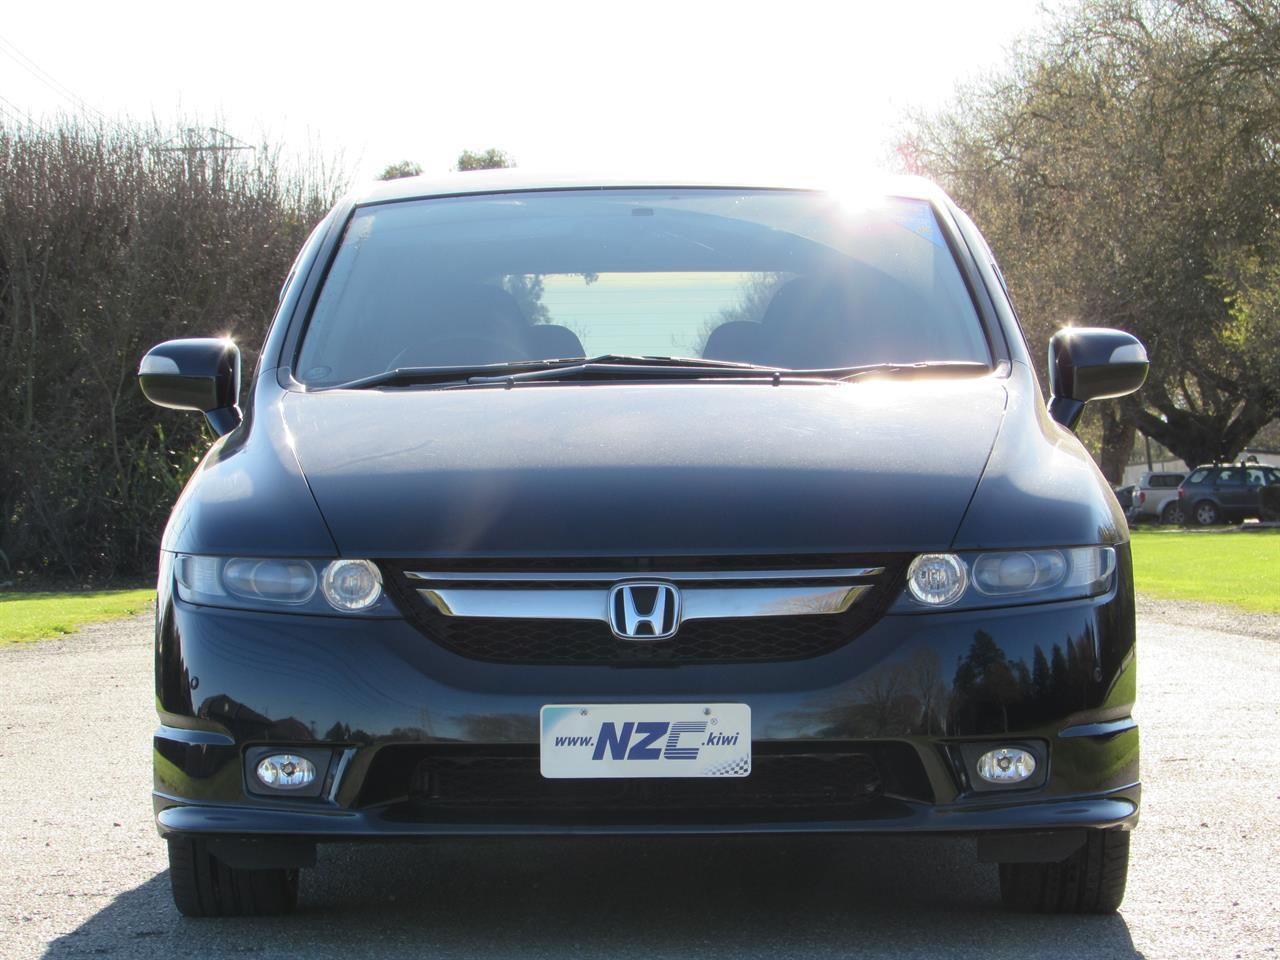 image-1, 2008 Honda Odyssey Absolute at Christchurch